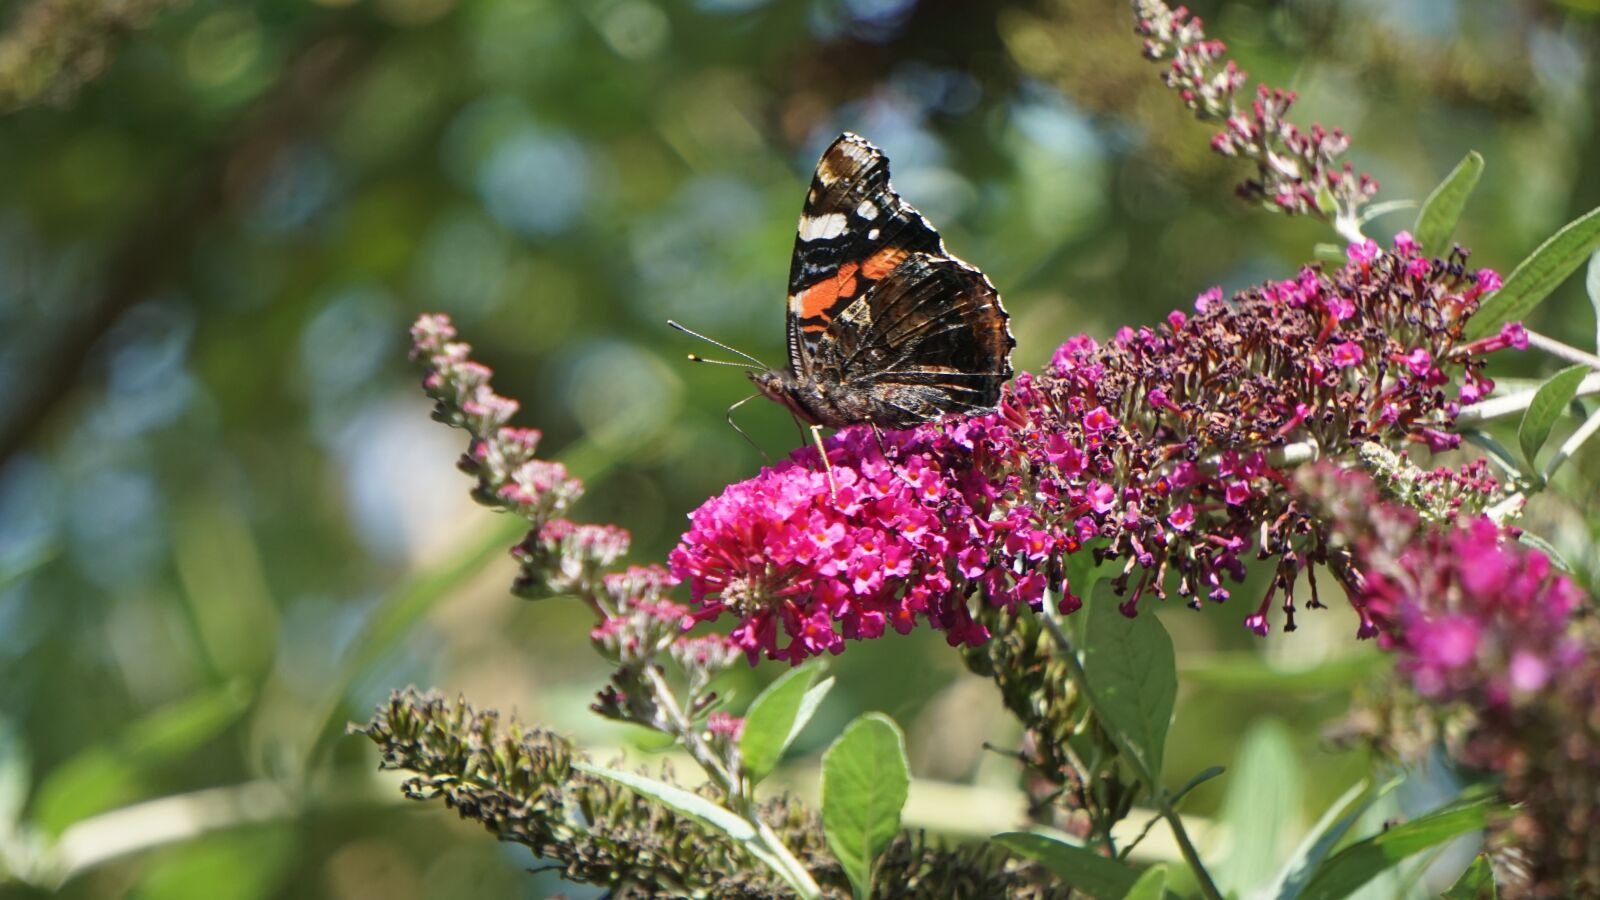 """Sony a6000 sample photo. """"Butterfly, insect, flower"""" photography"""